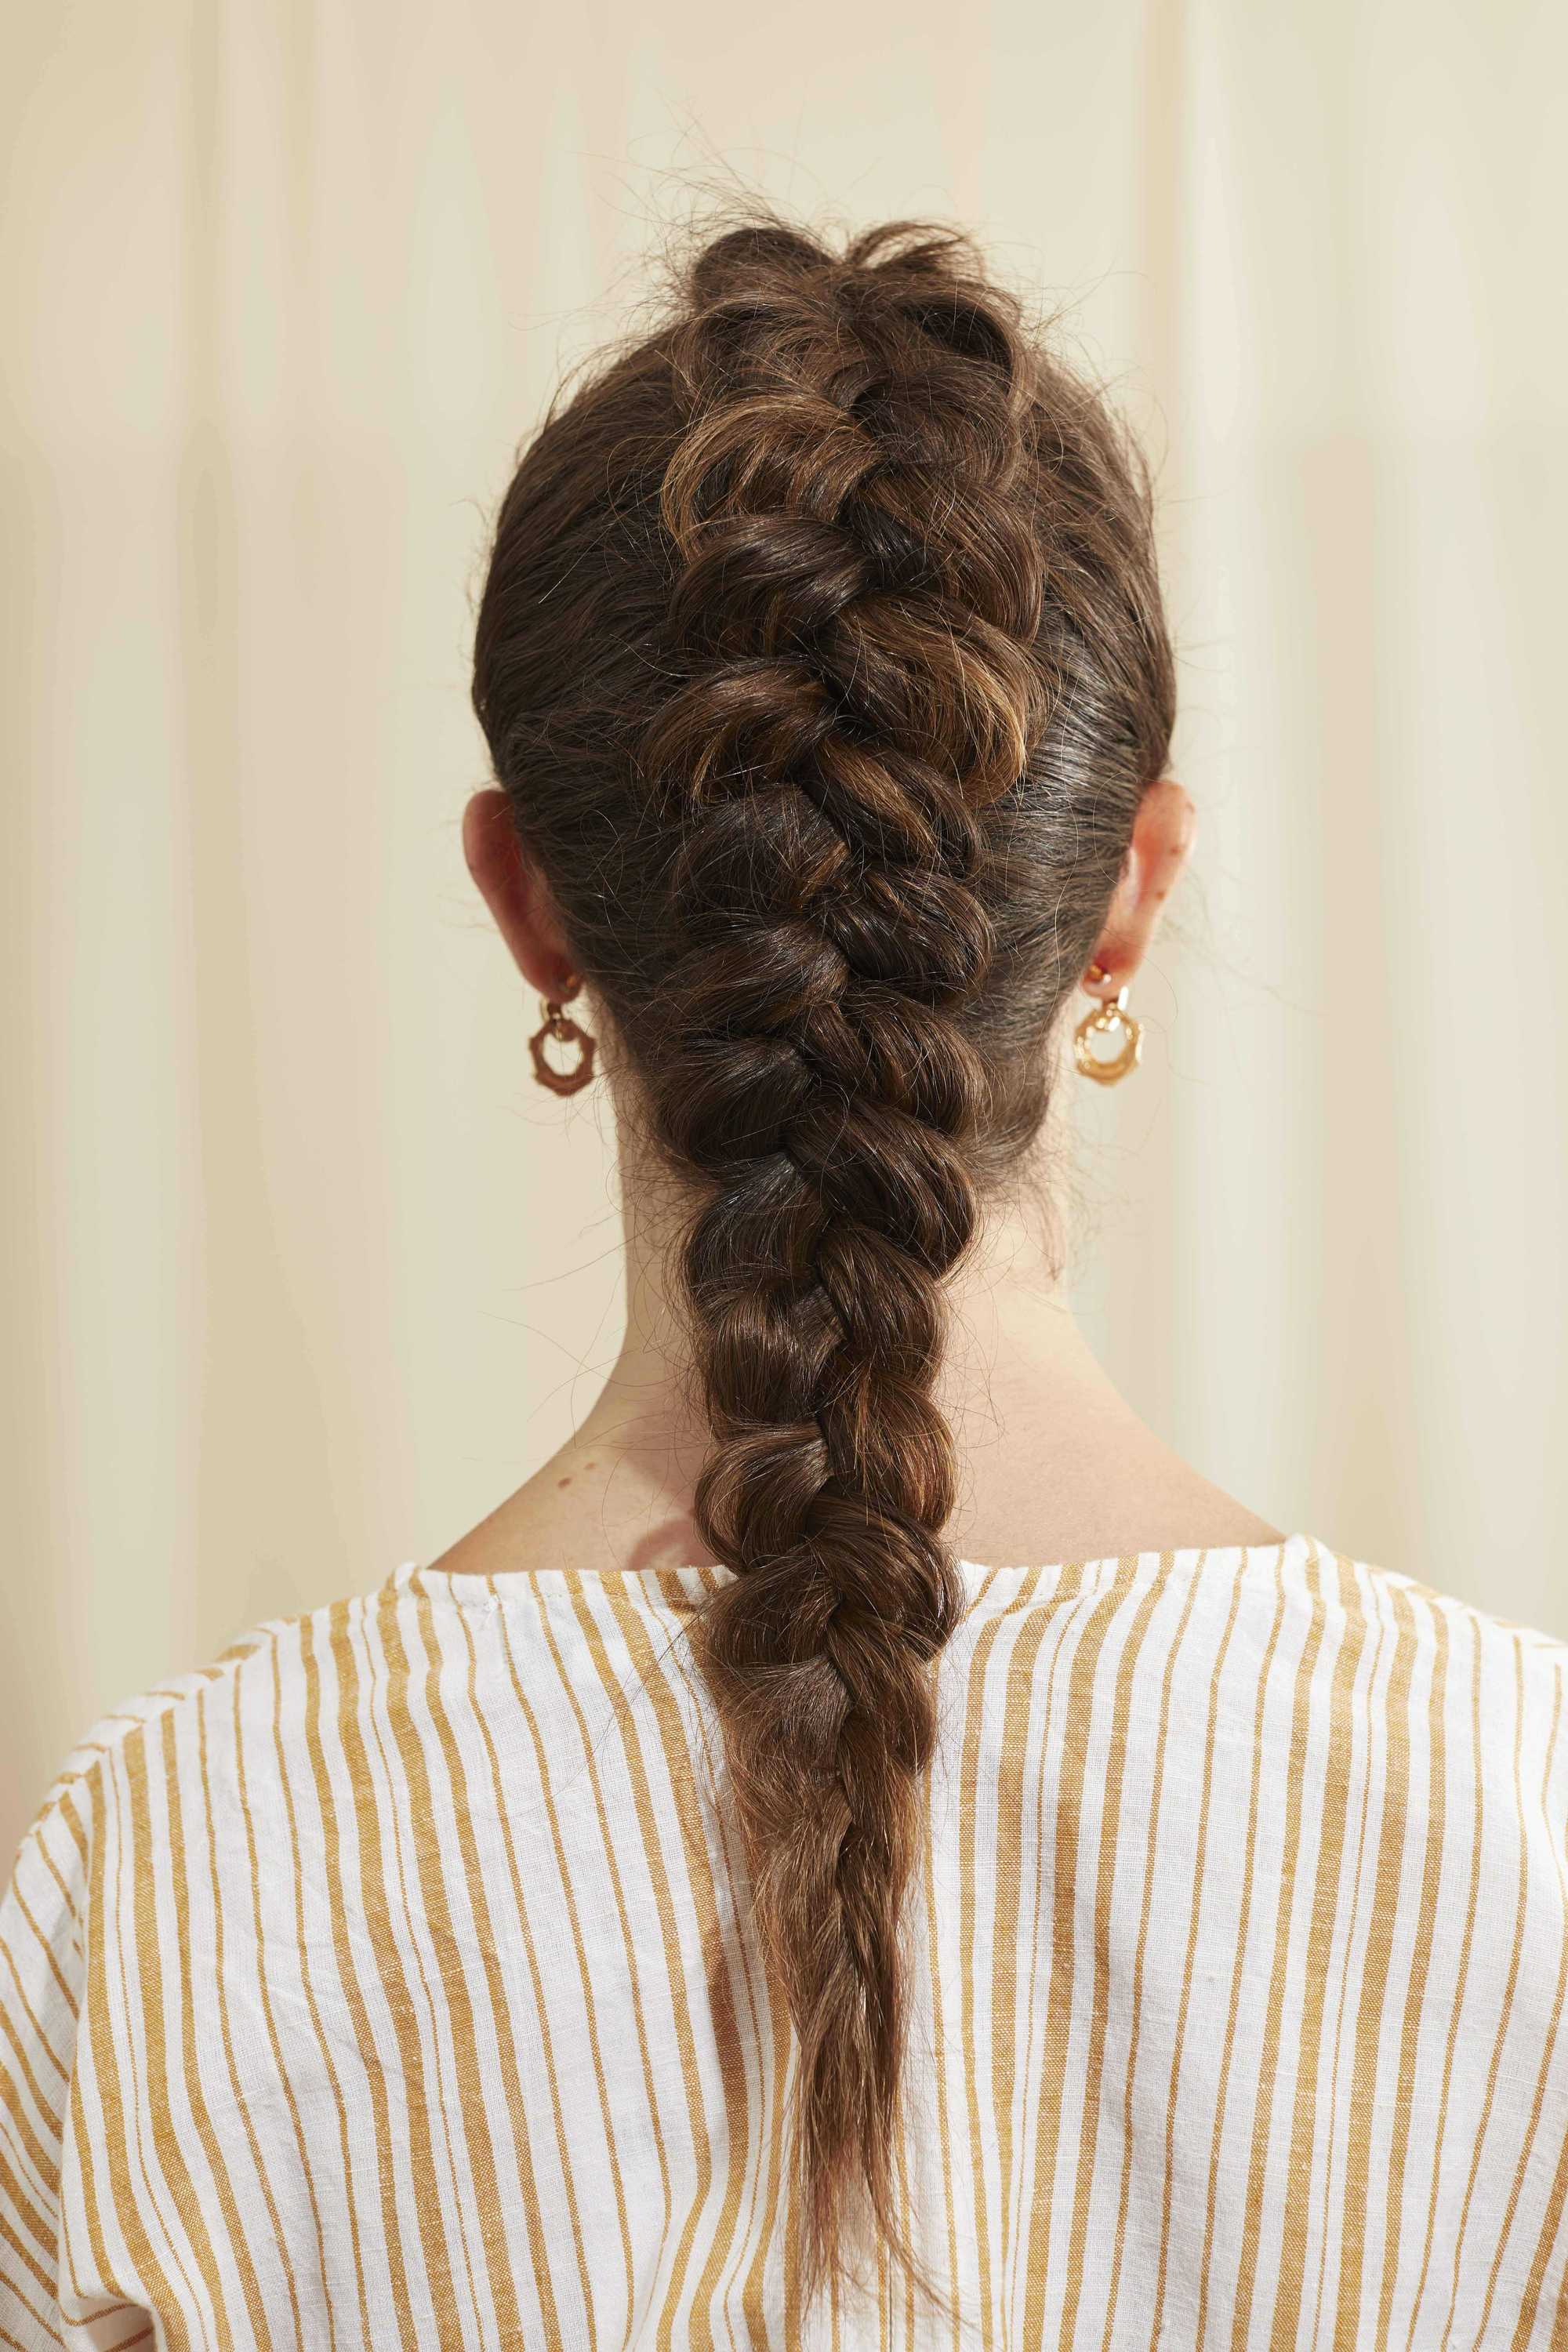 42 Cute And Easy Hairstyles For School